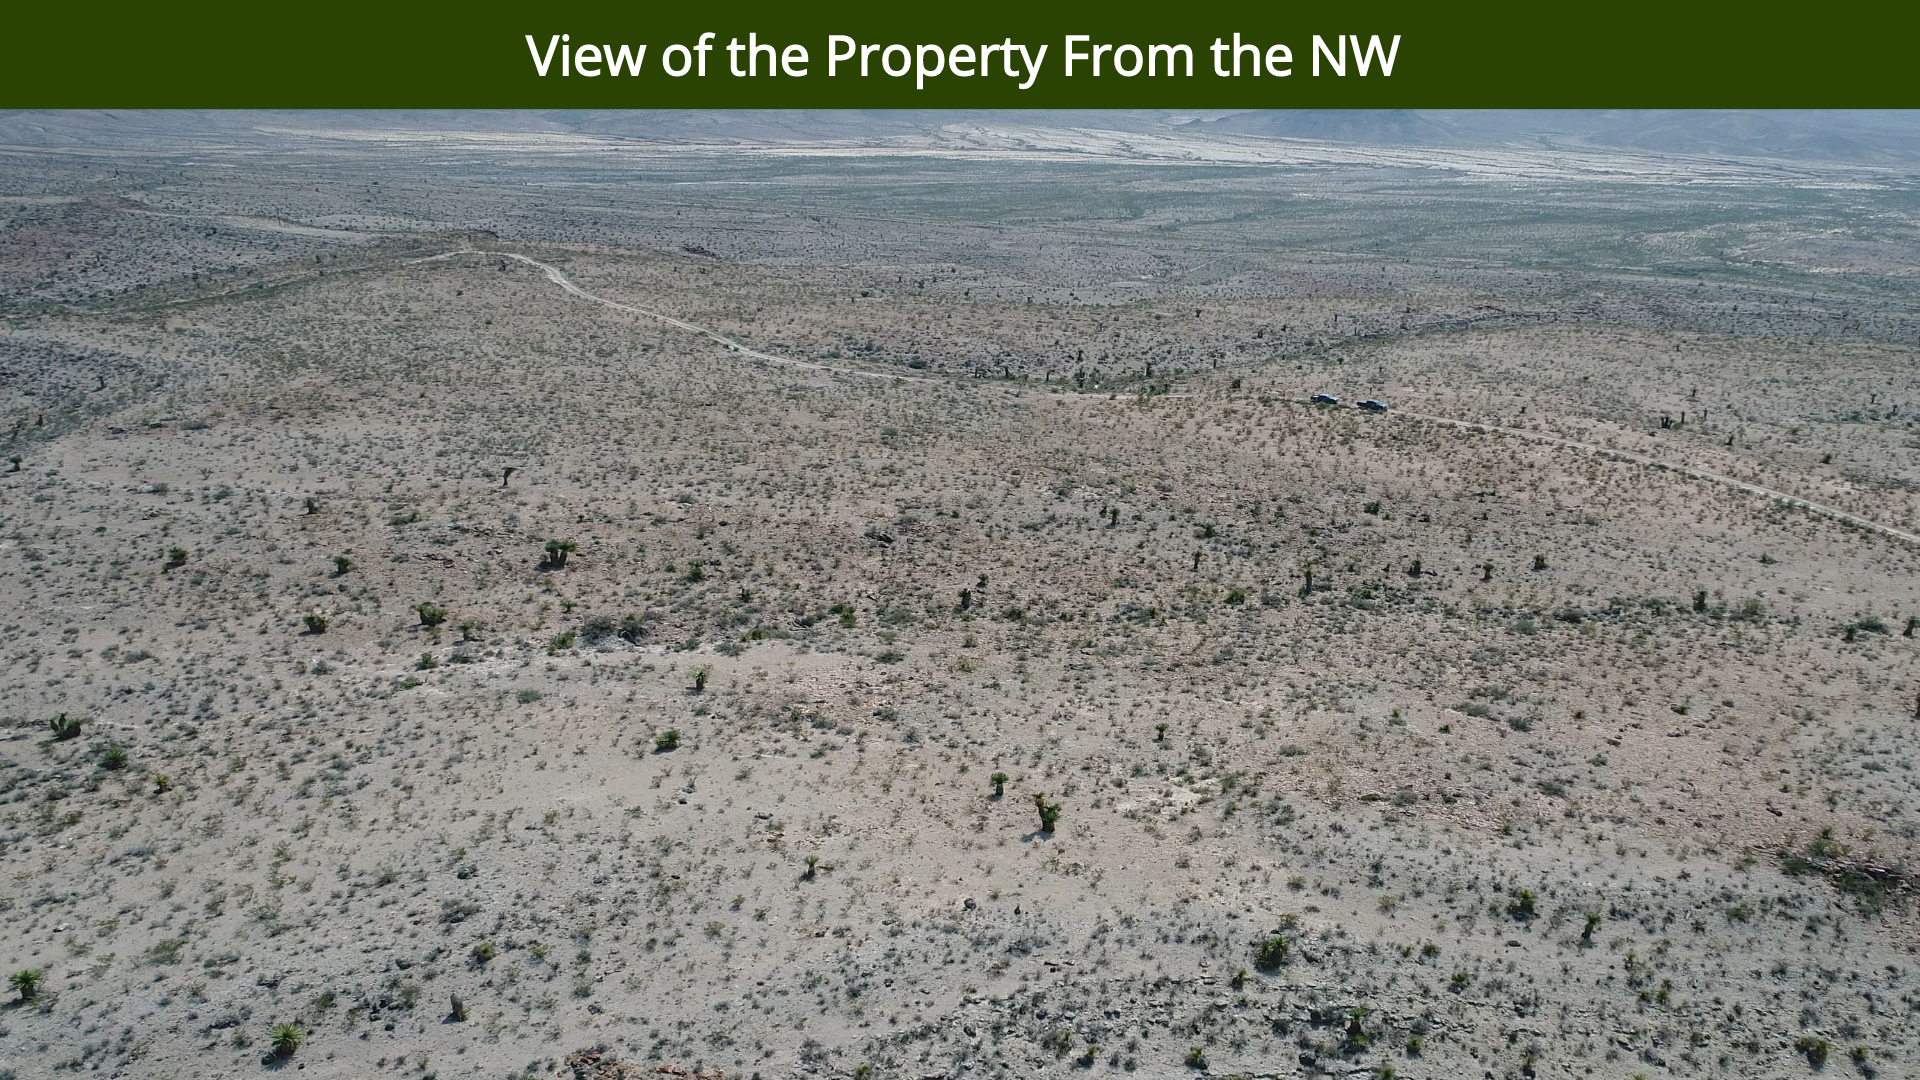 View of the Property From the NW